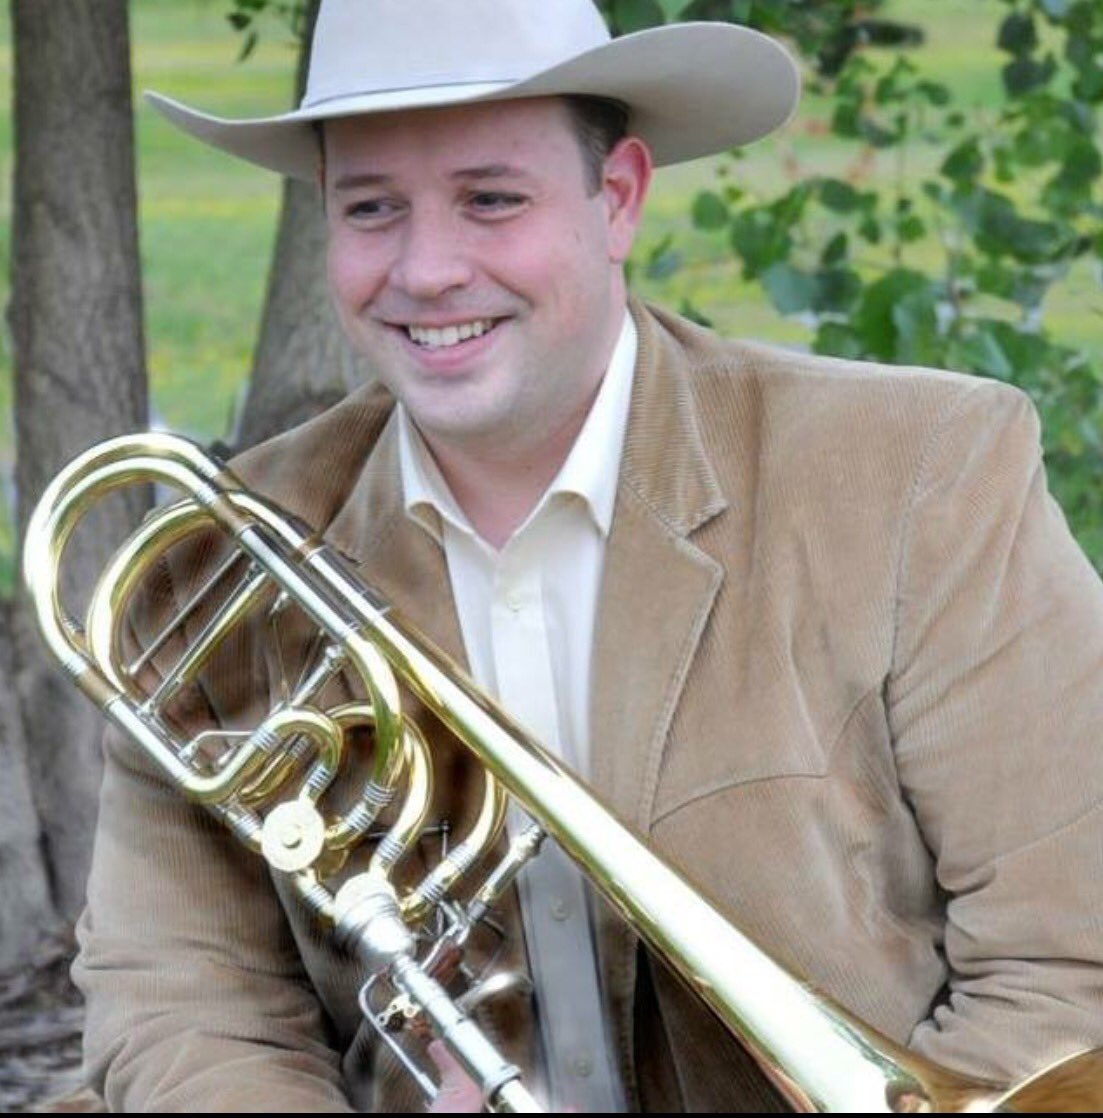 Welcome to the newest @LouOrch member Bass trombonist Bryan Heath ! #bass trombone #orchestra @LOMusicians #brass #lowbrass #musicians<br>http://pic.twitter.com/k9xoCr3sX7